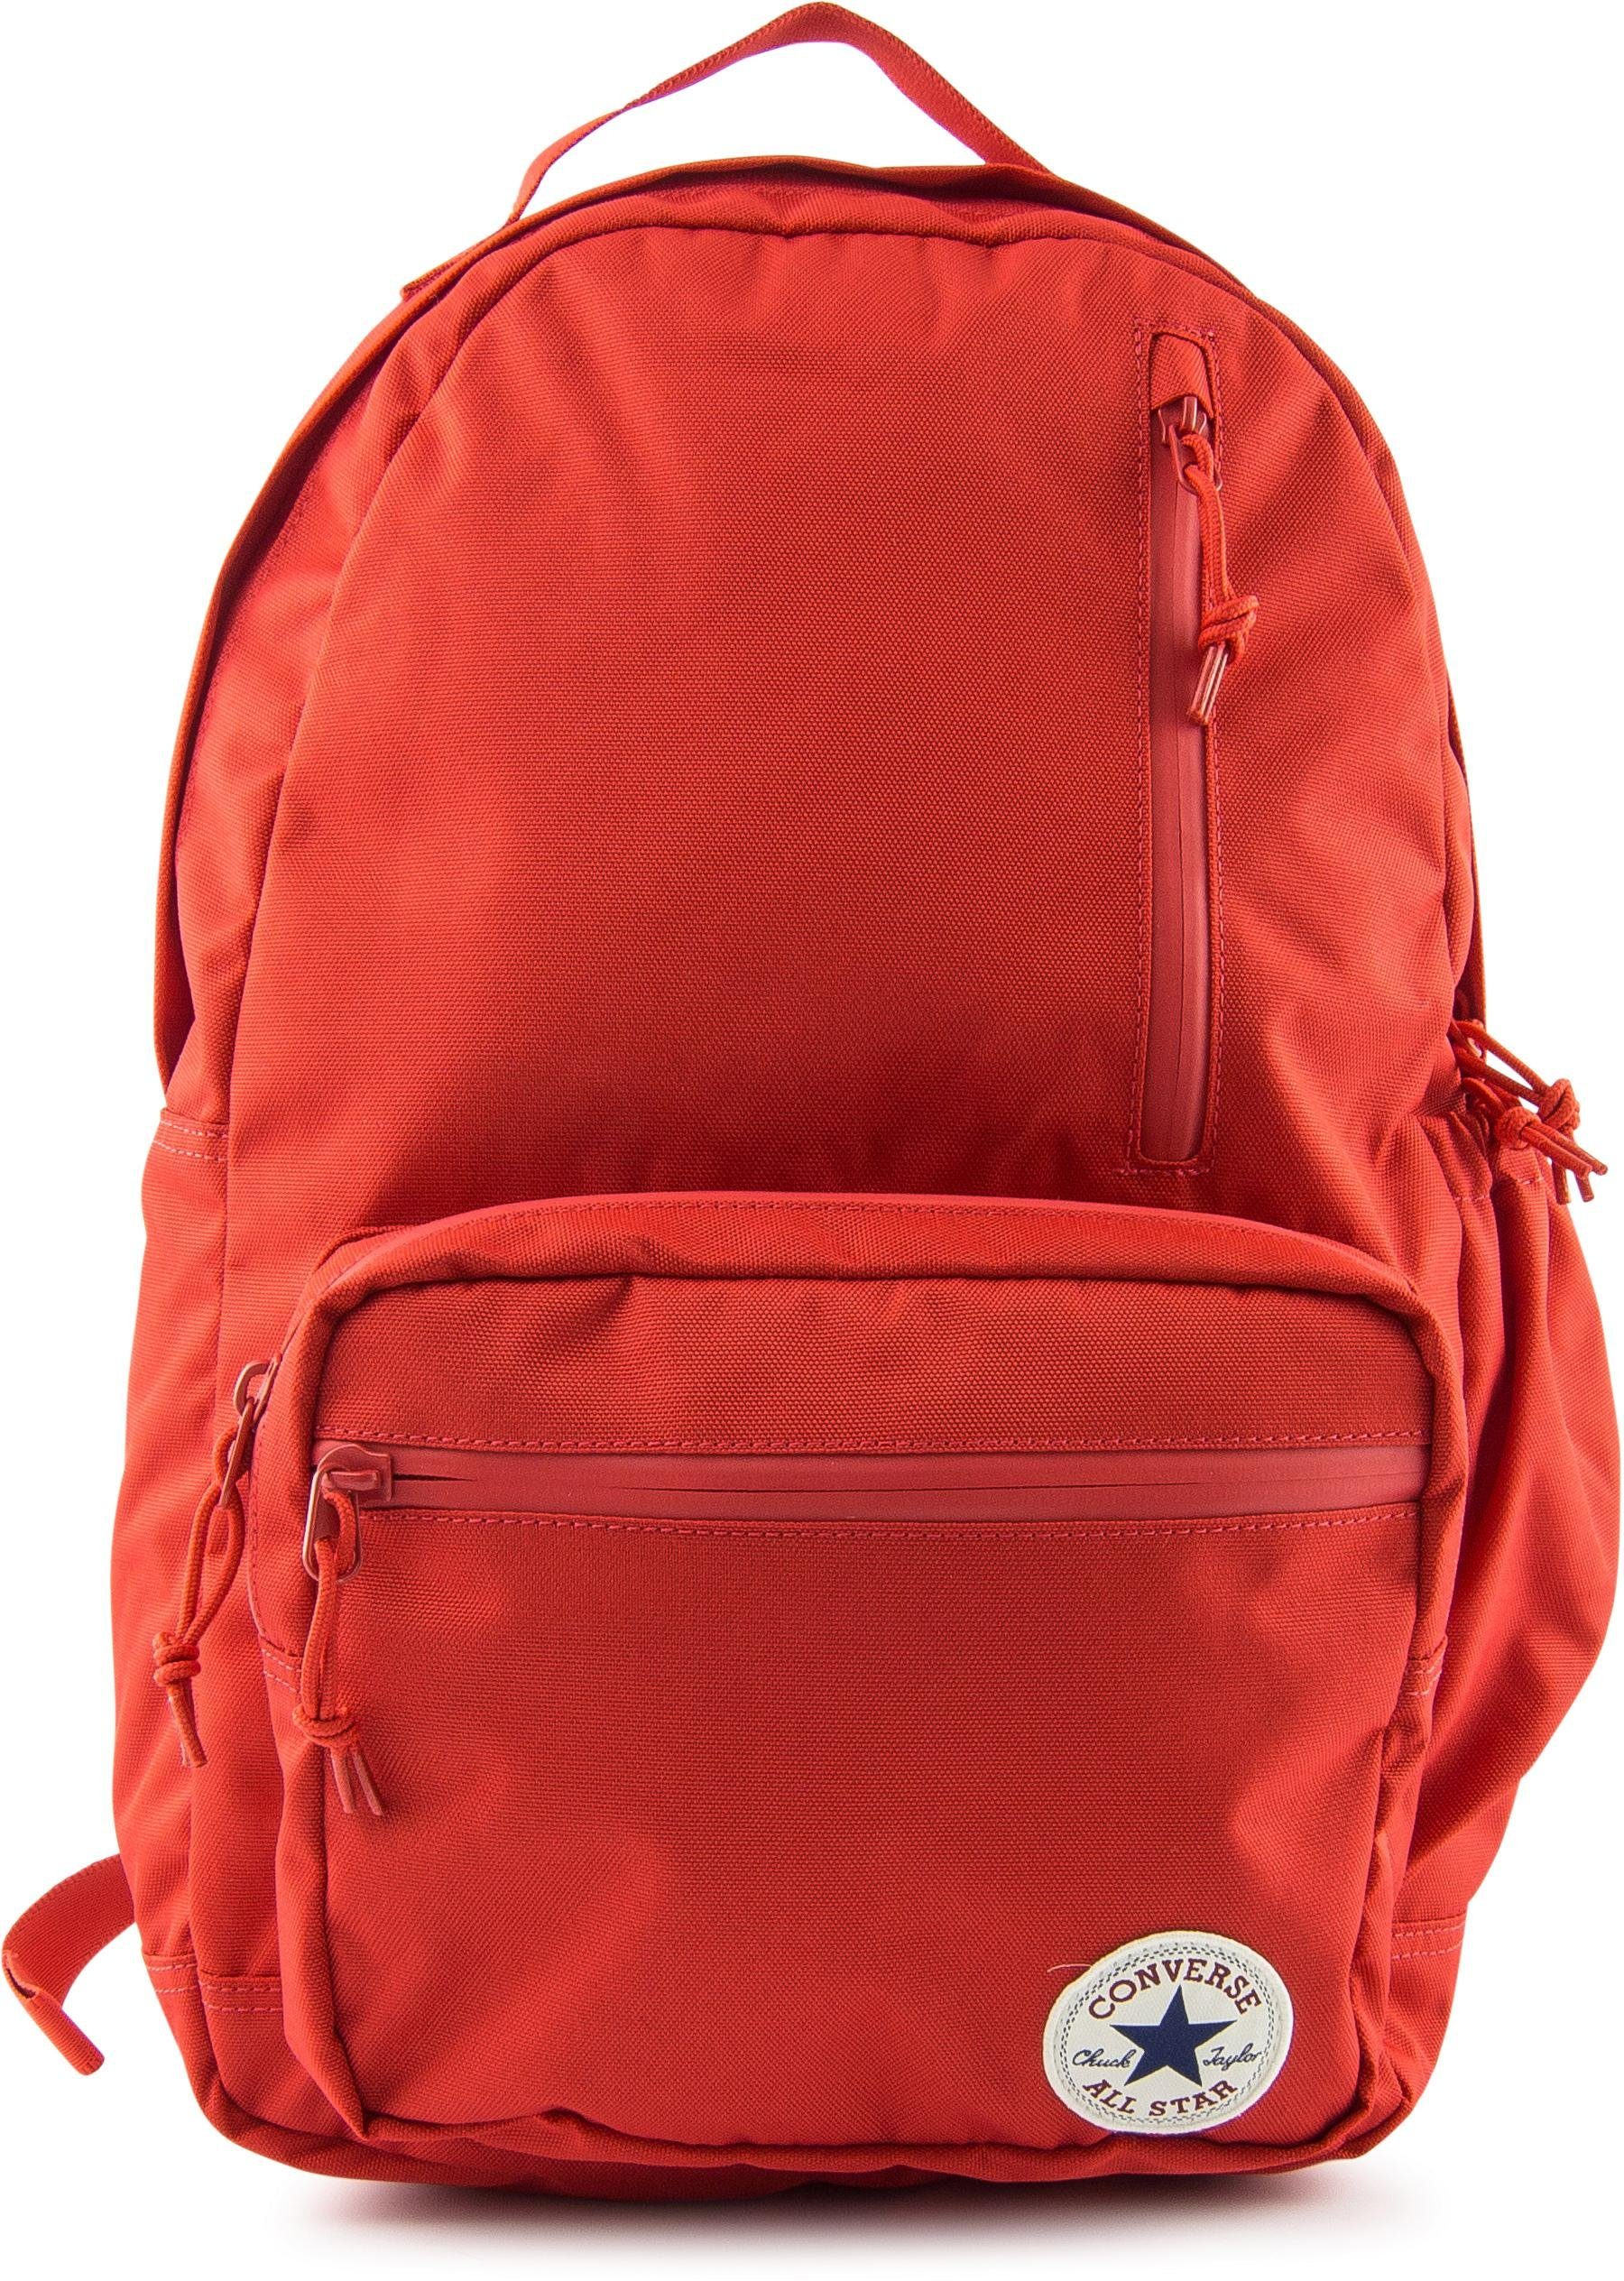 Converse Rucksack, »Go Backpack, Red«